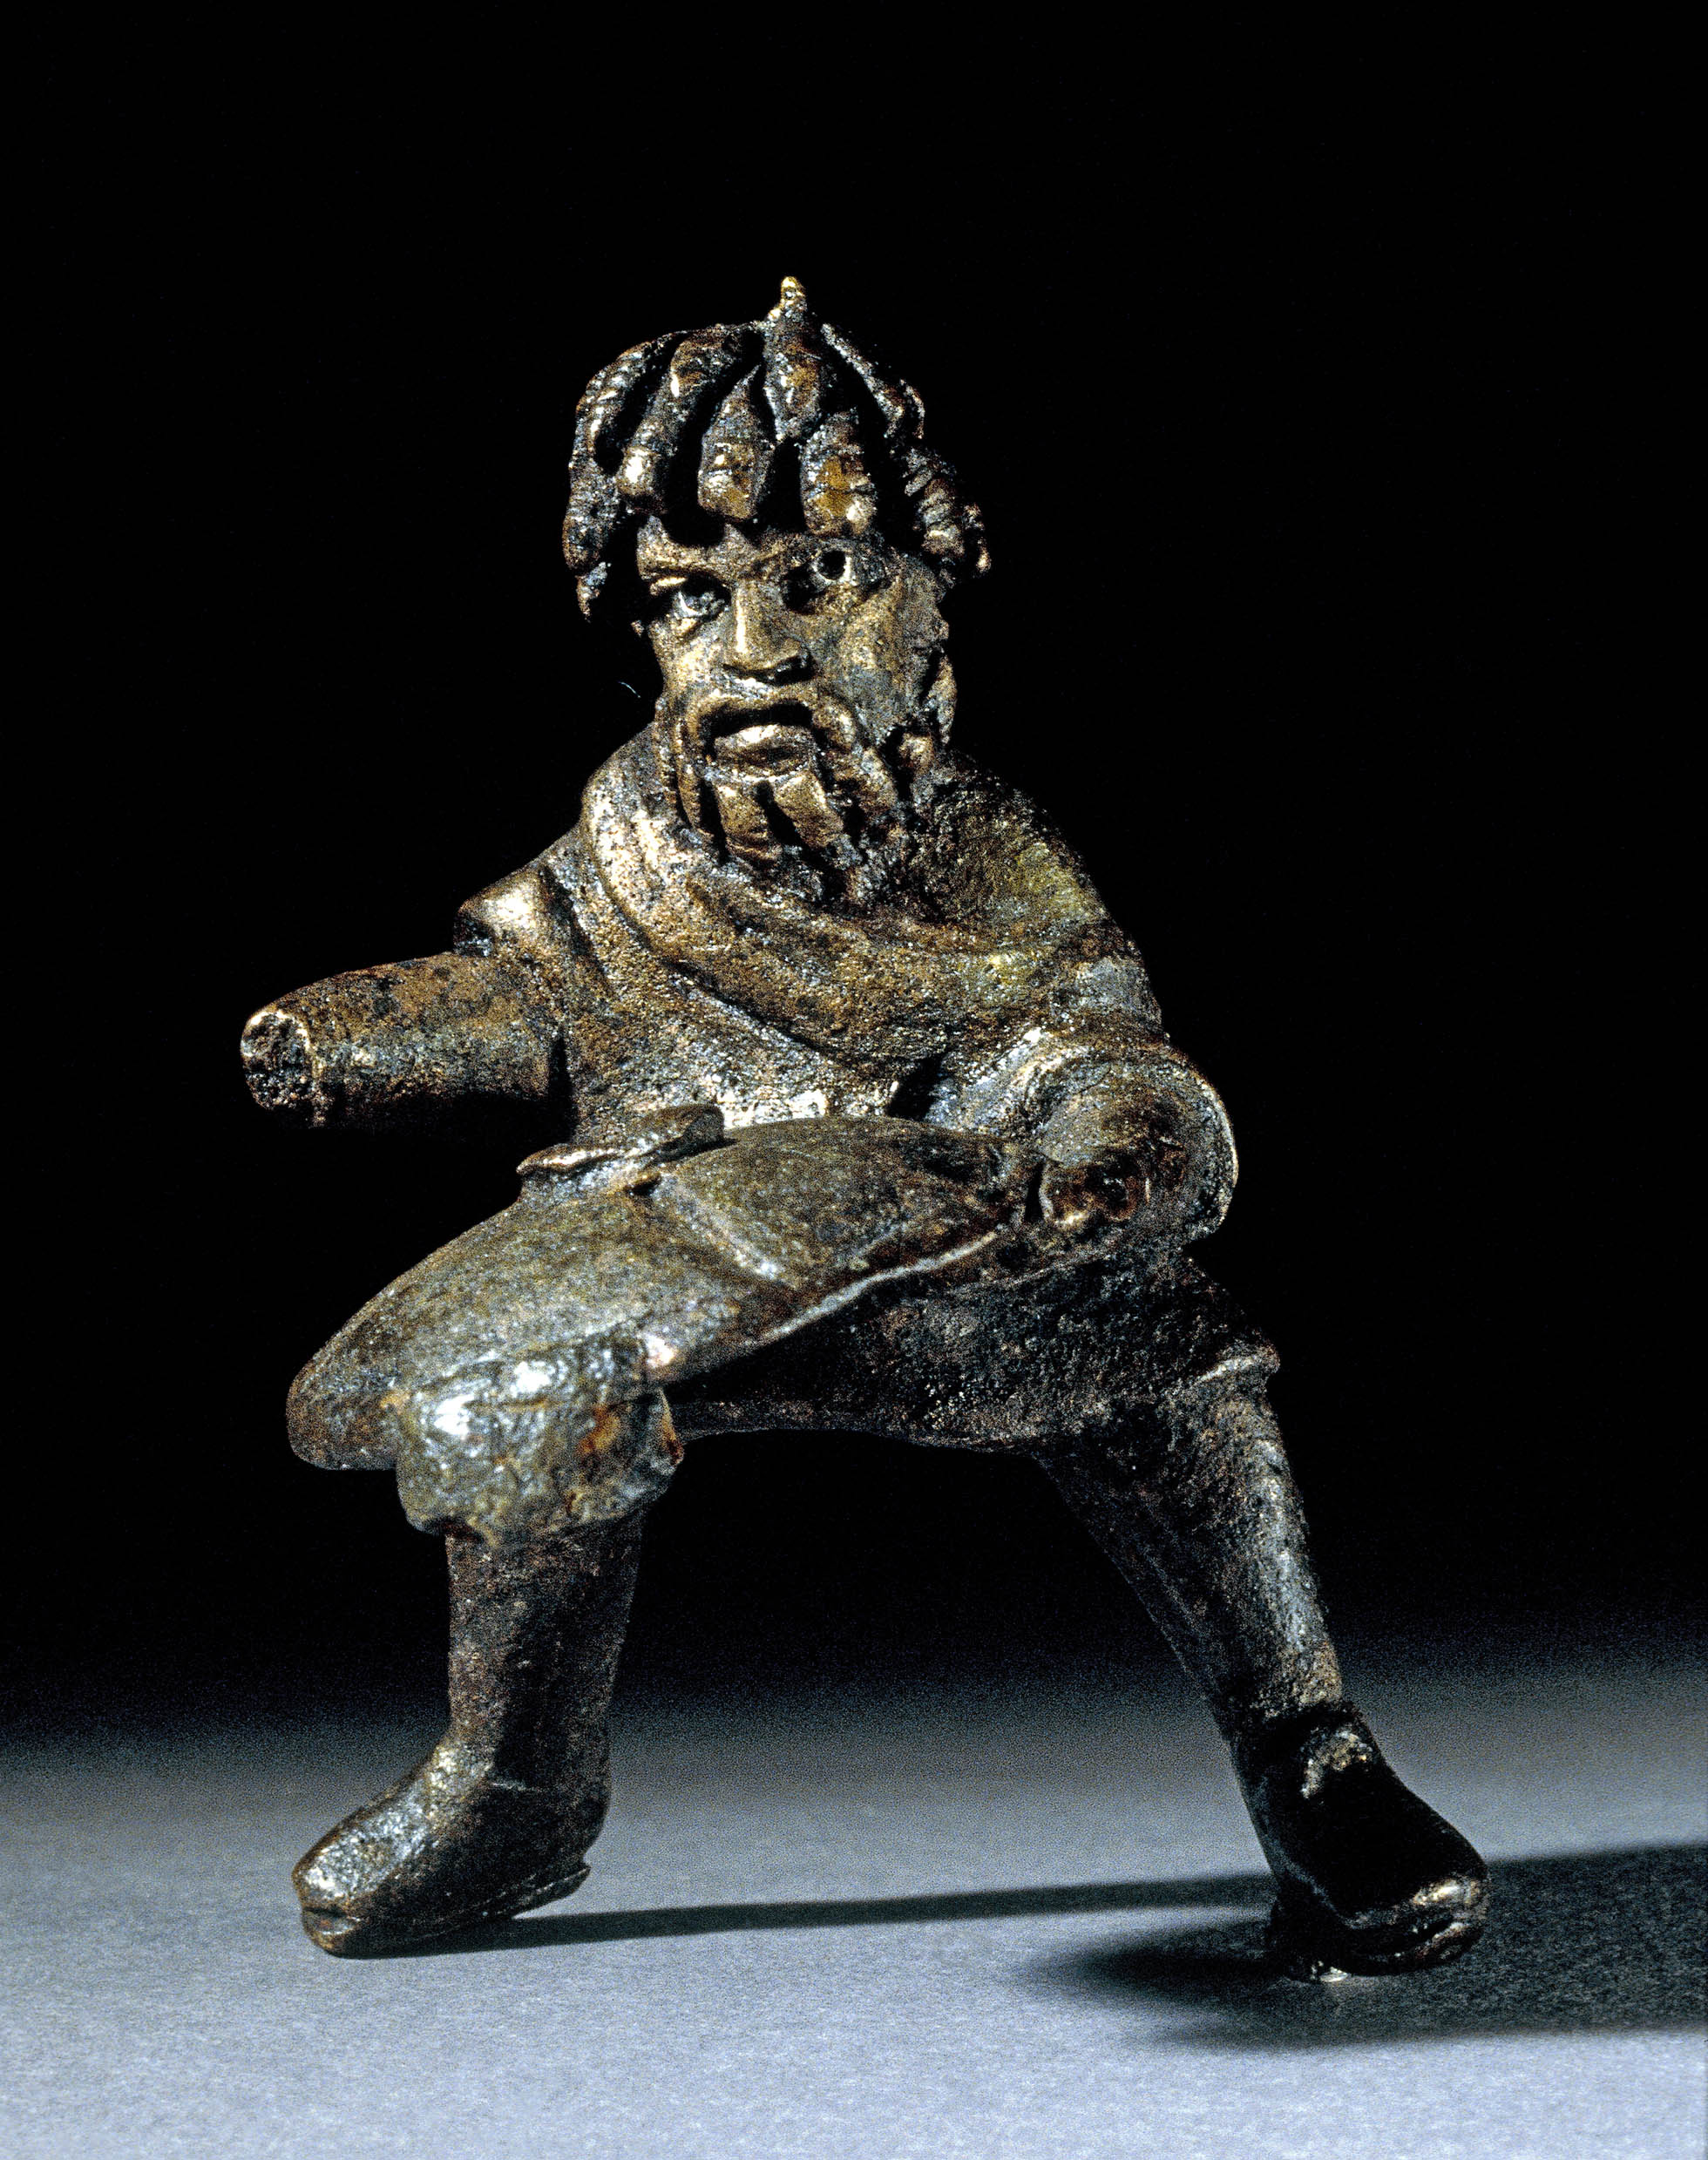 Small metal figure of a man with dreadlocks in a dynamic stance.